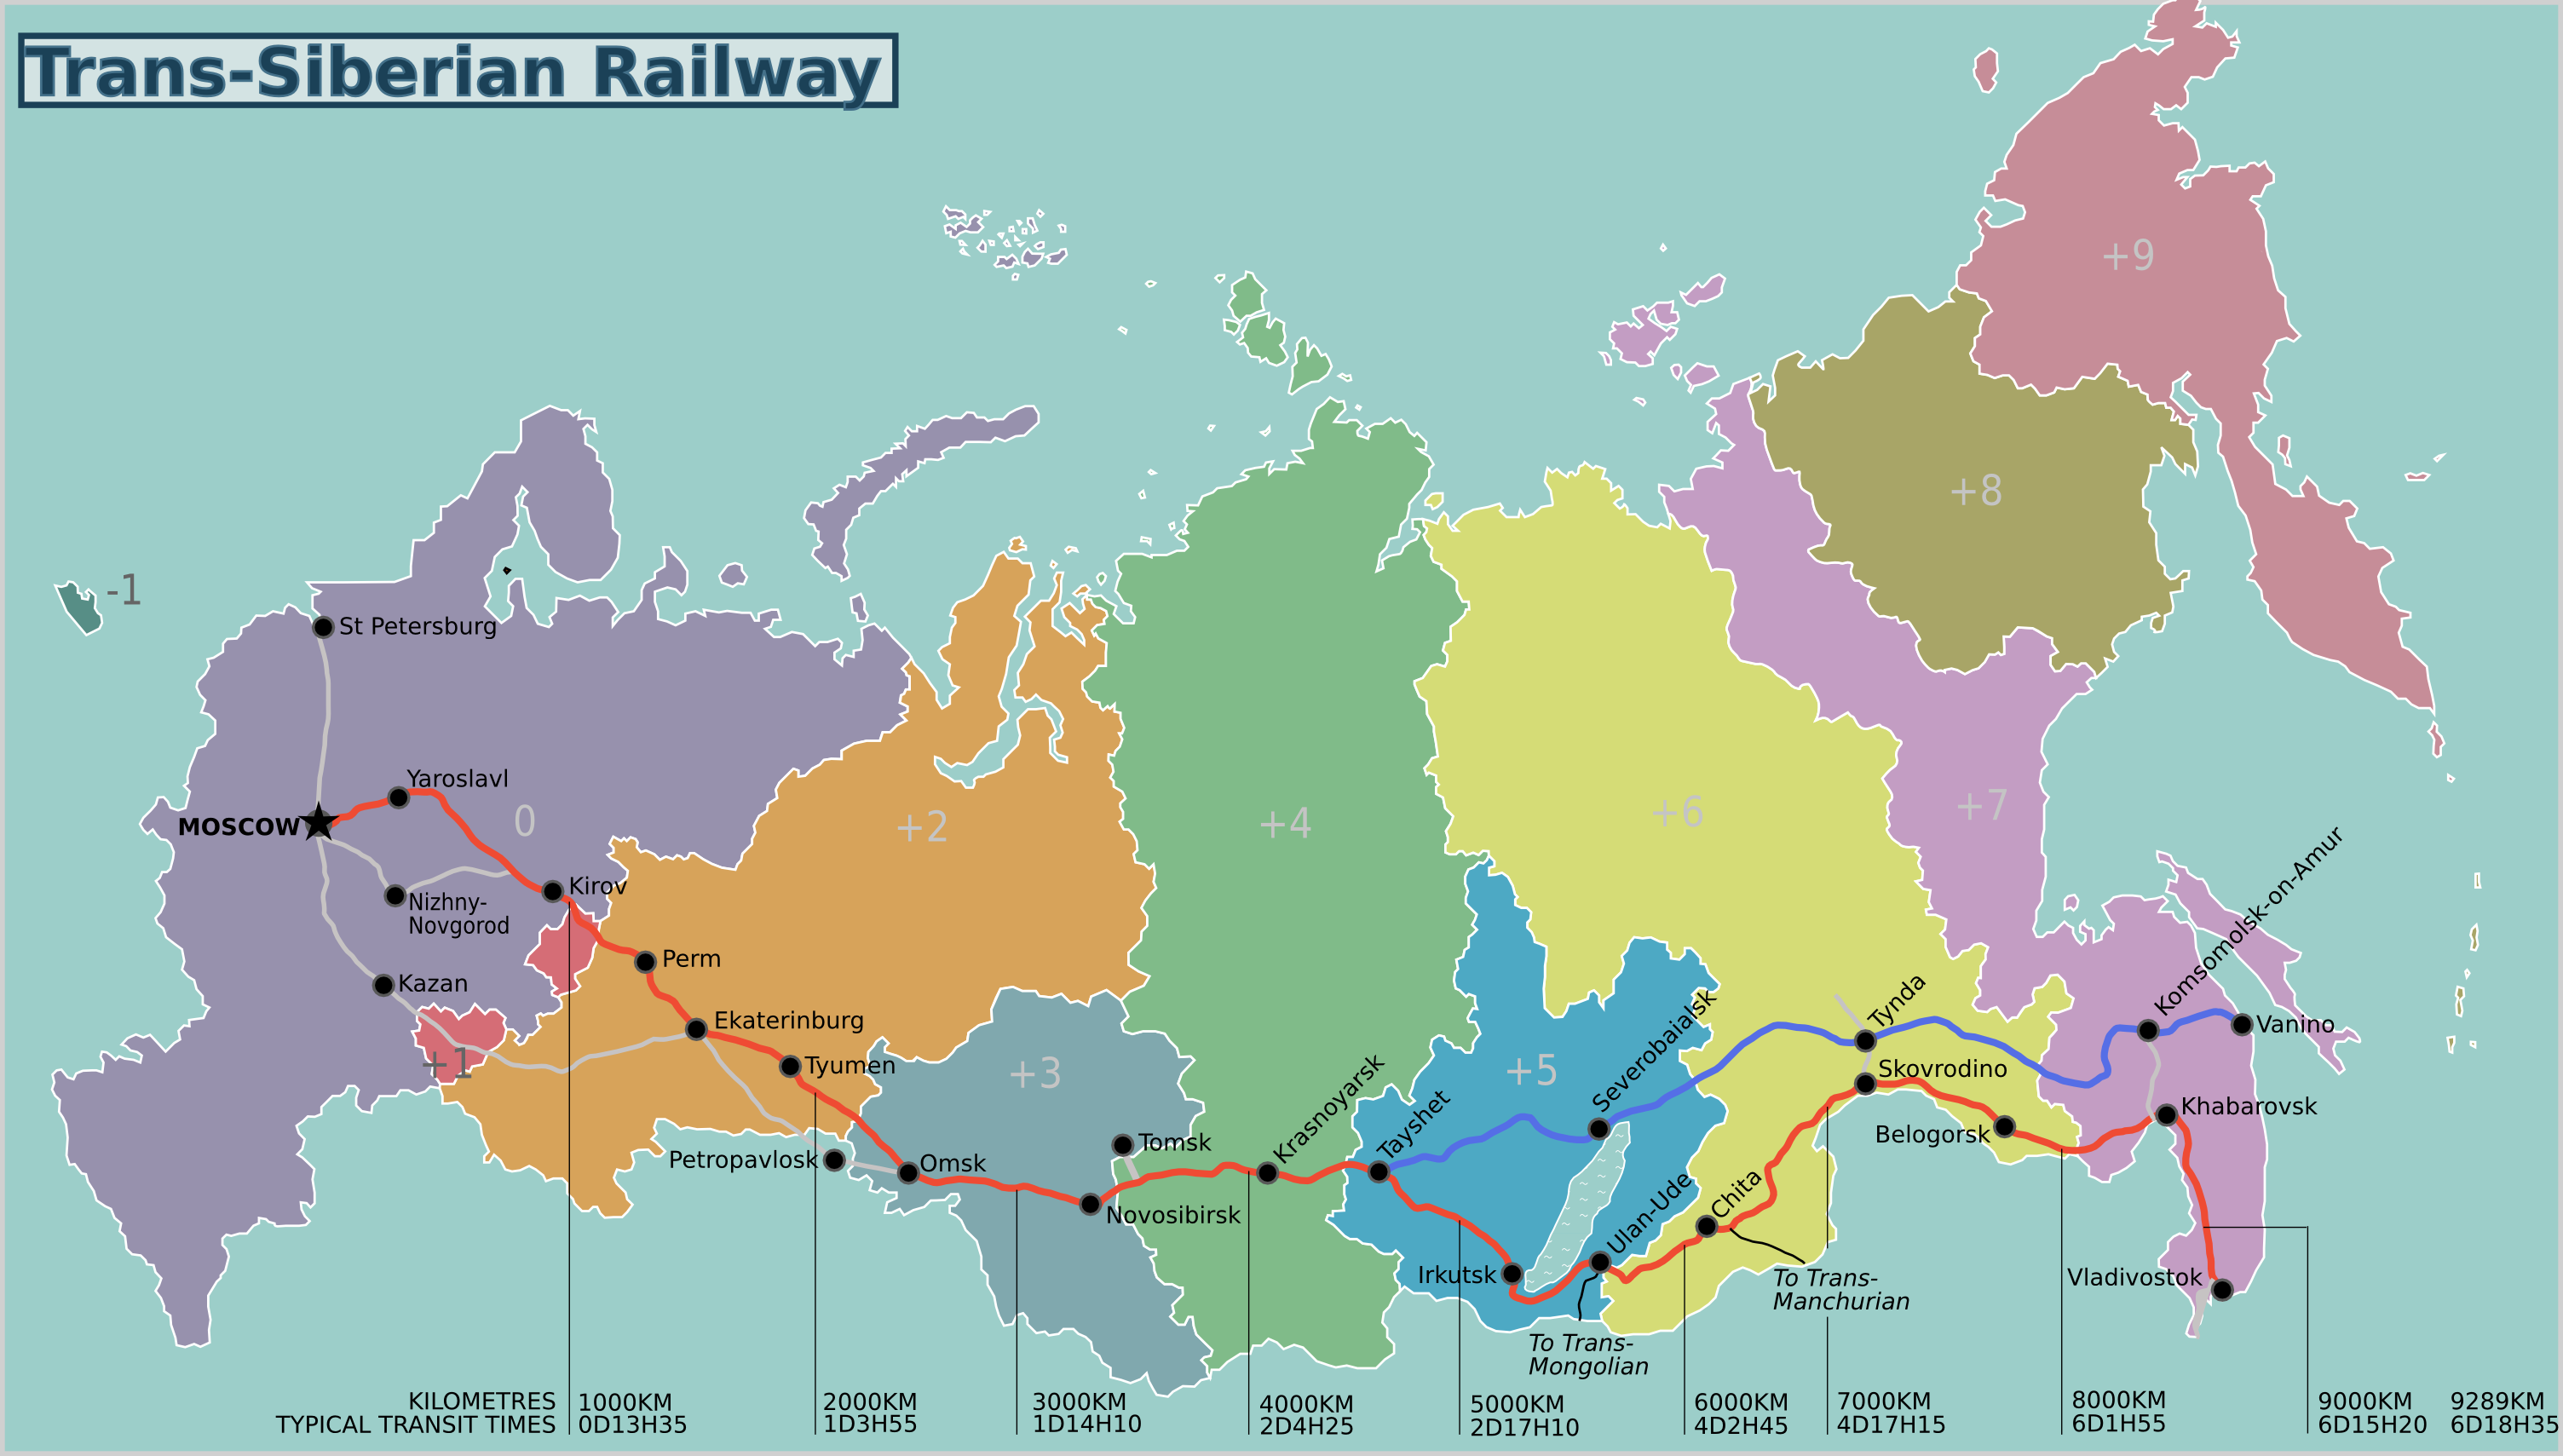 Trans-Siberian railway map from Wikipedia